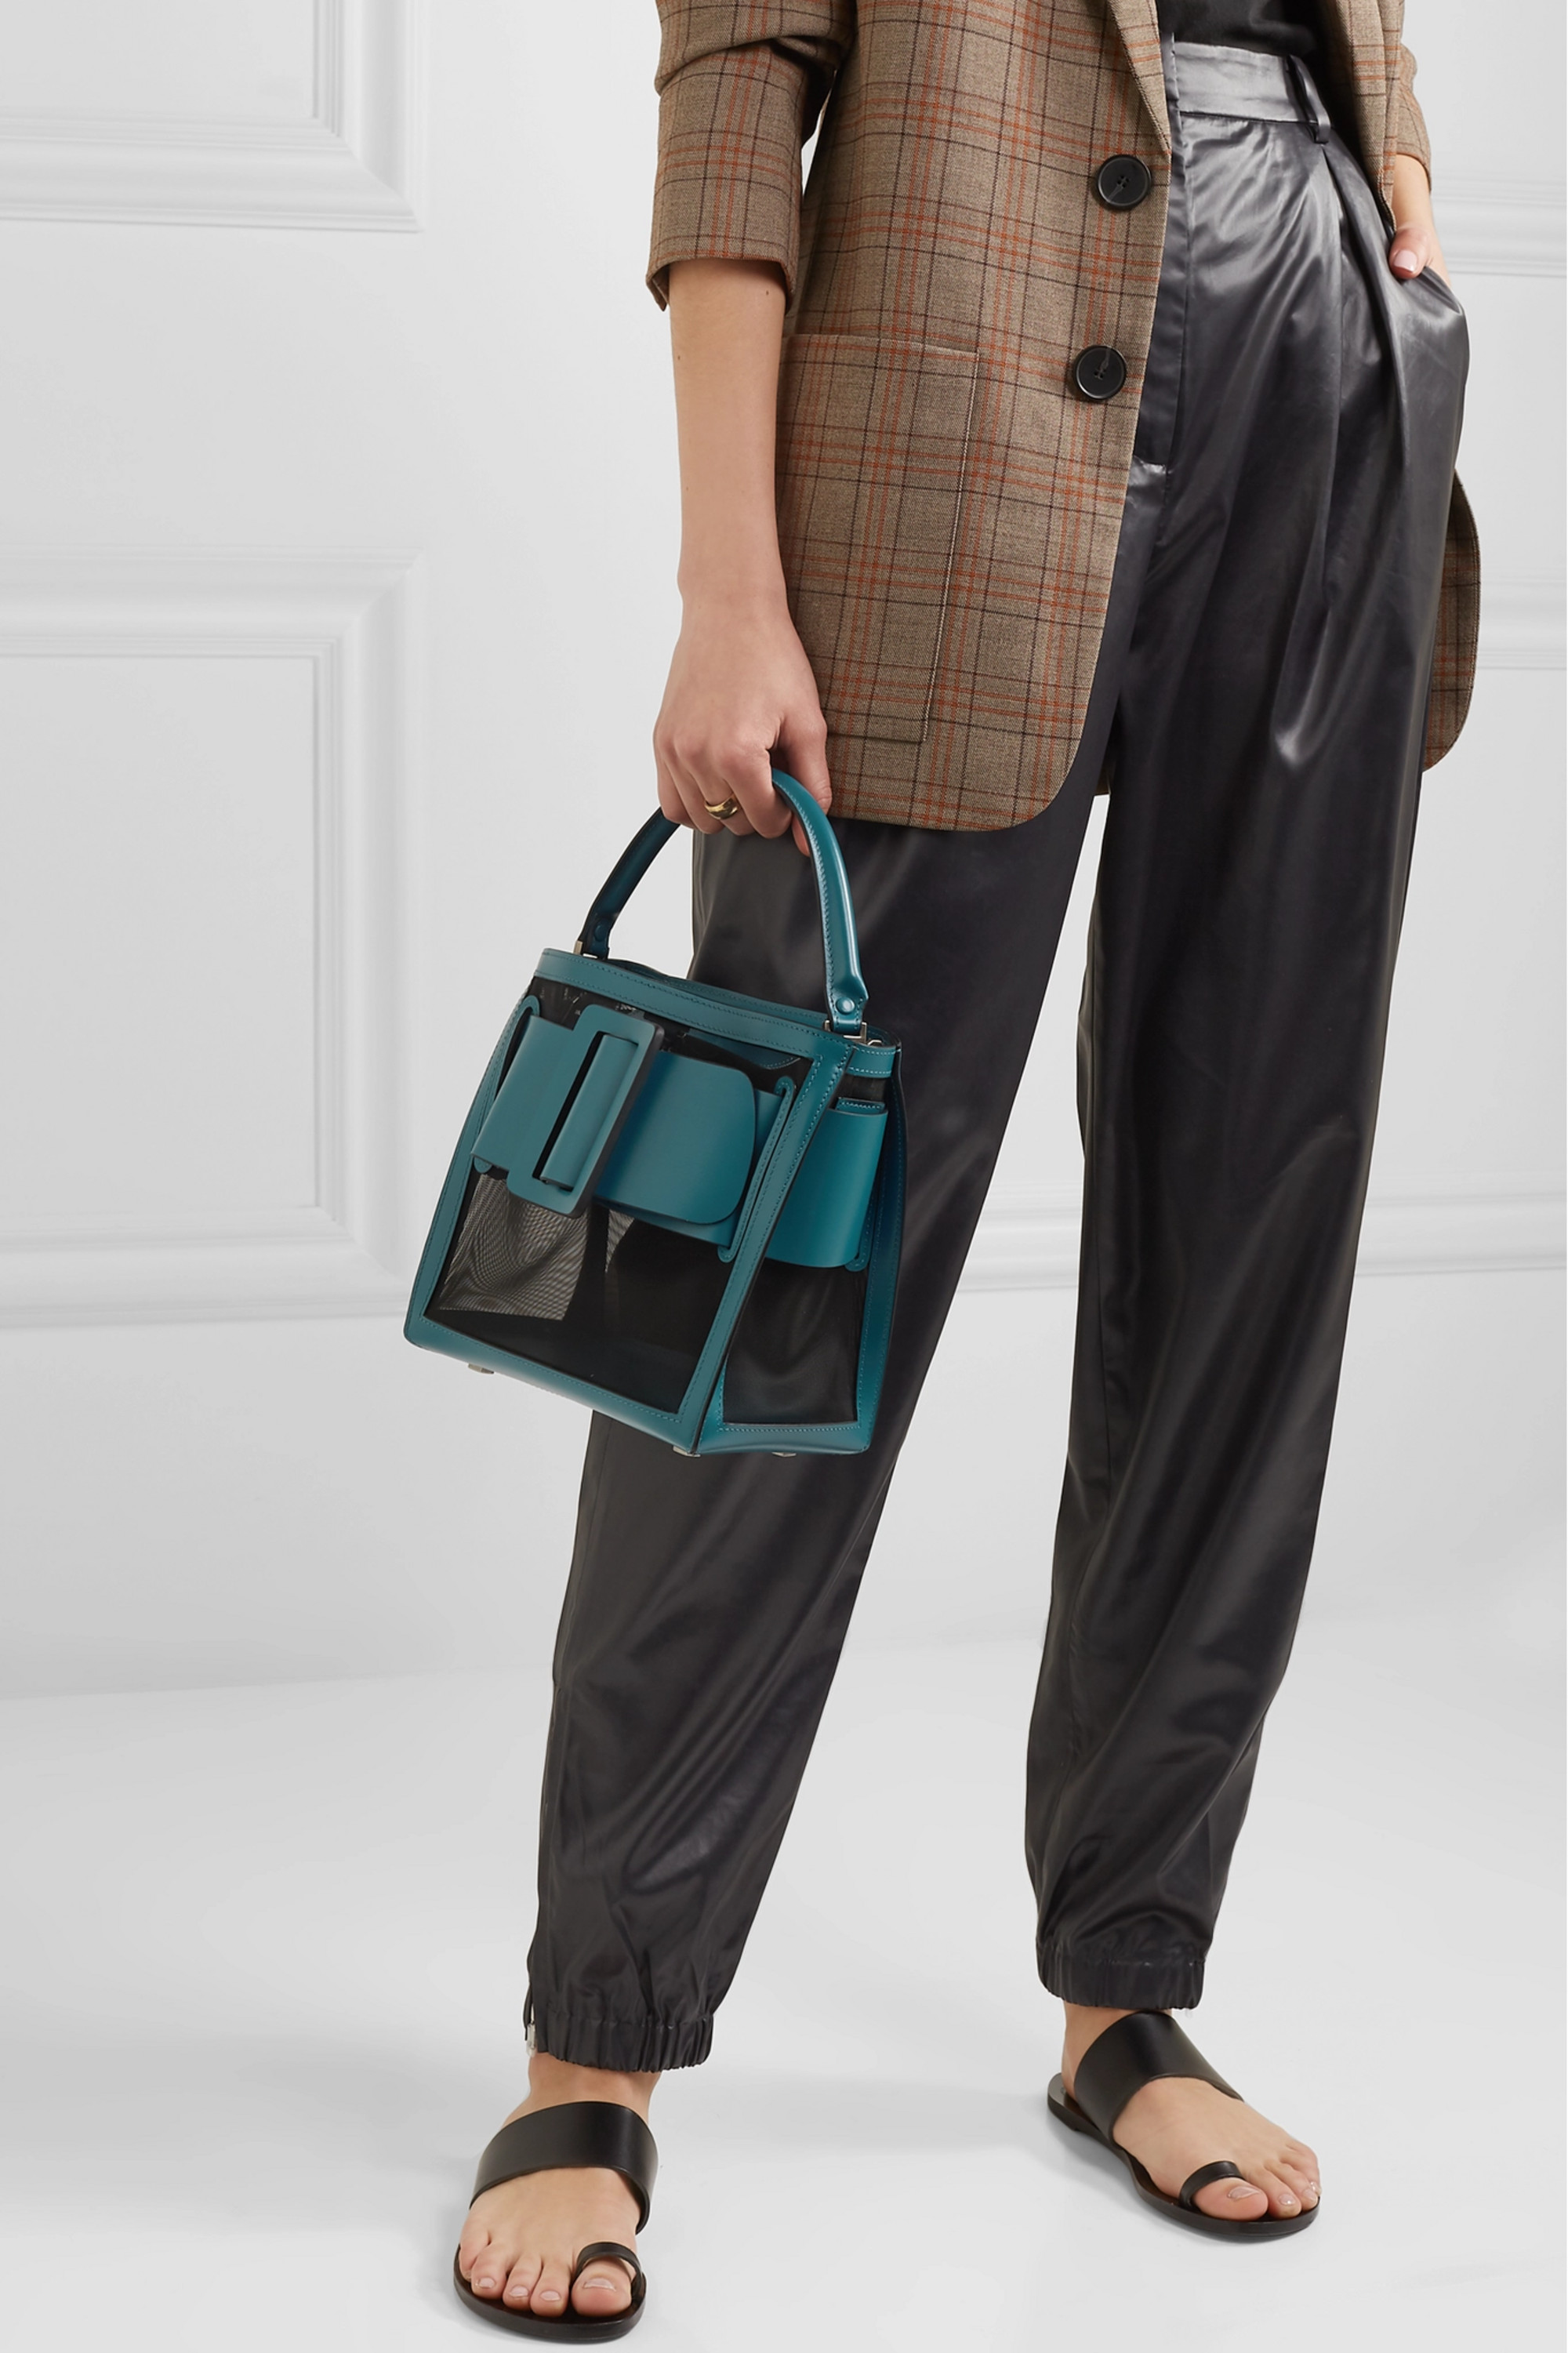 BOYY Devon 21 buckled two-tone leather and mesh tote